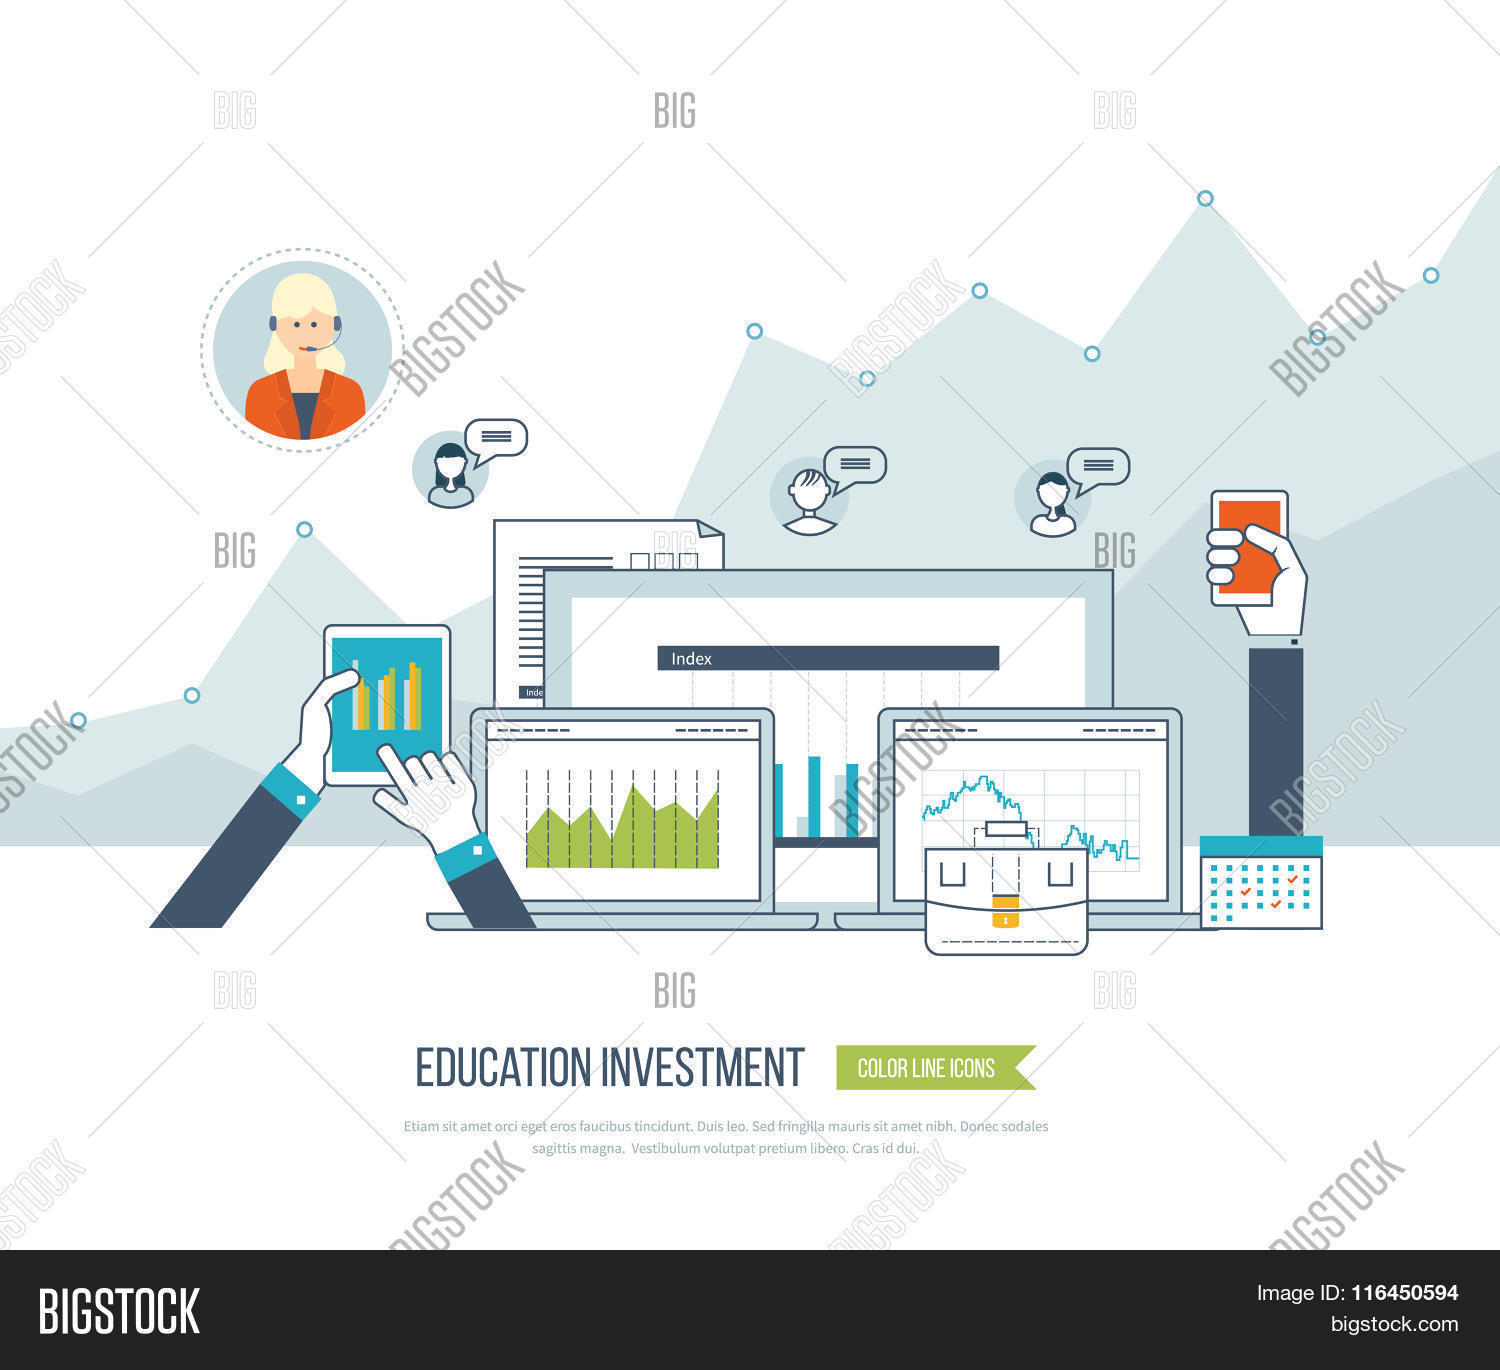 invest in education